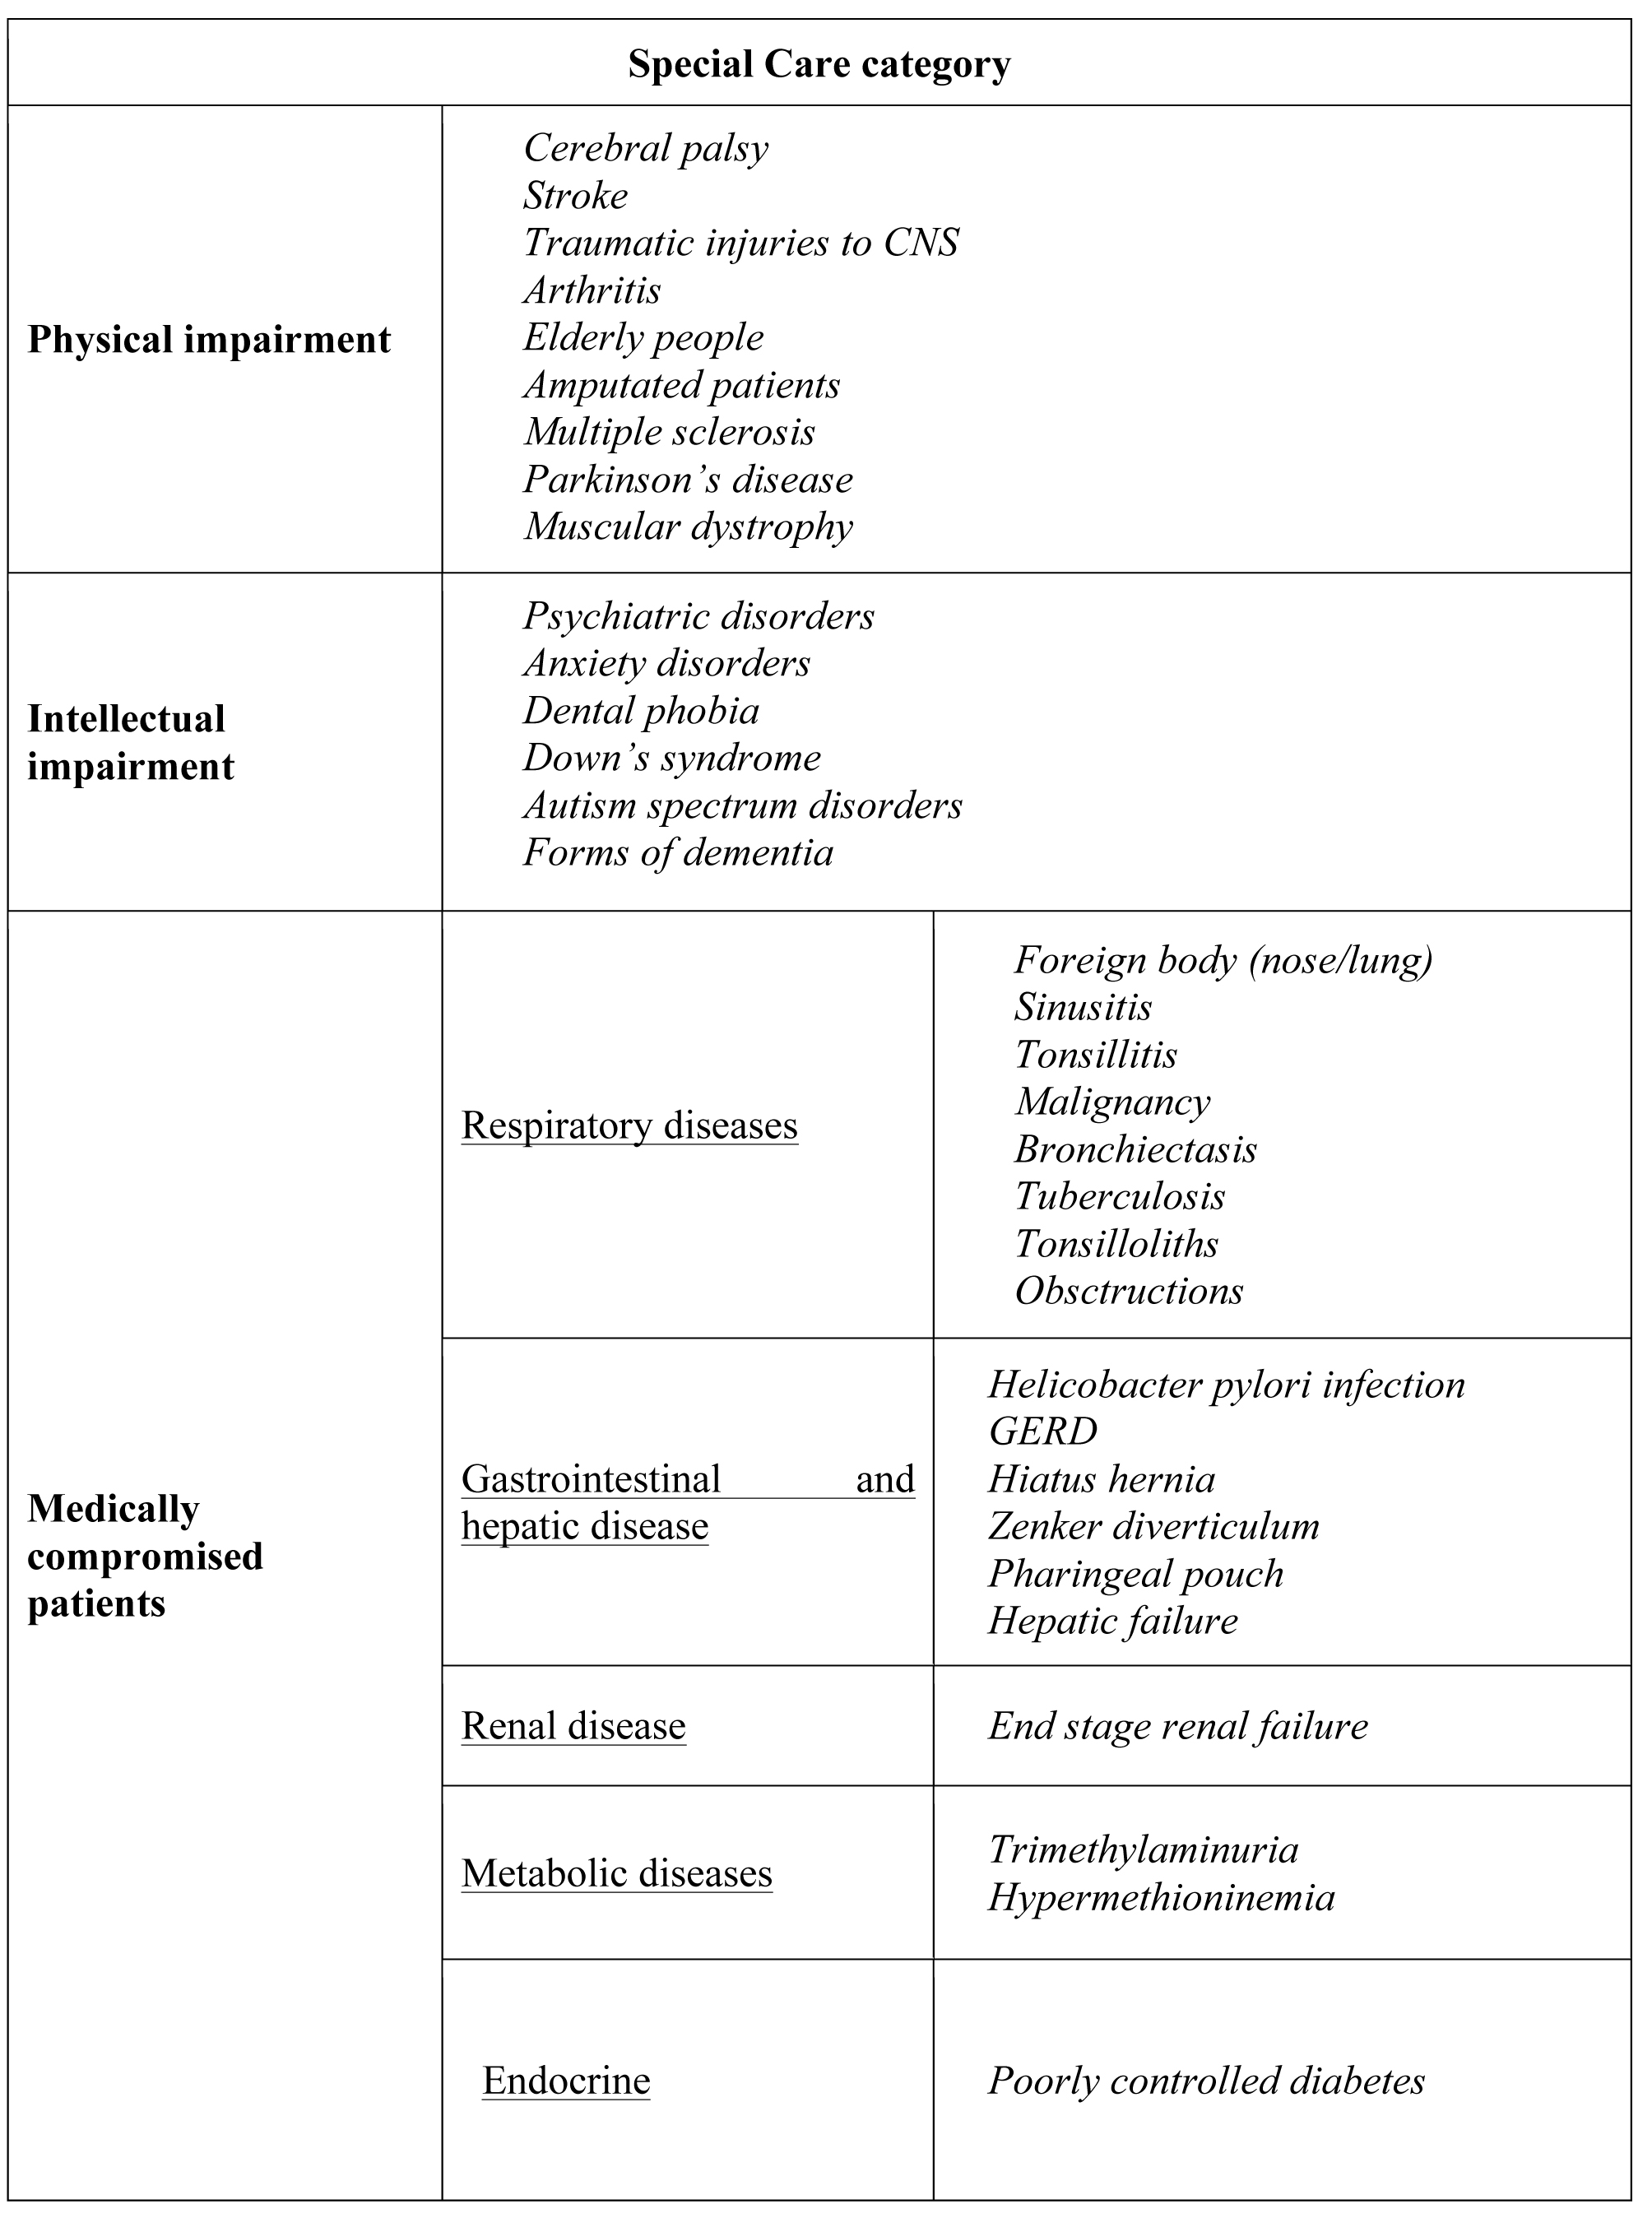 halitosis from tonsilloliths literature review for oral health care providers